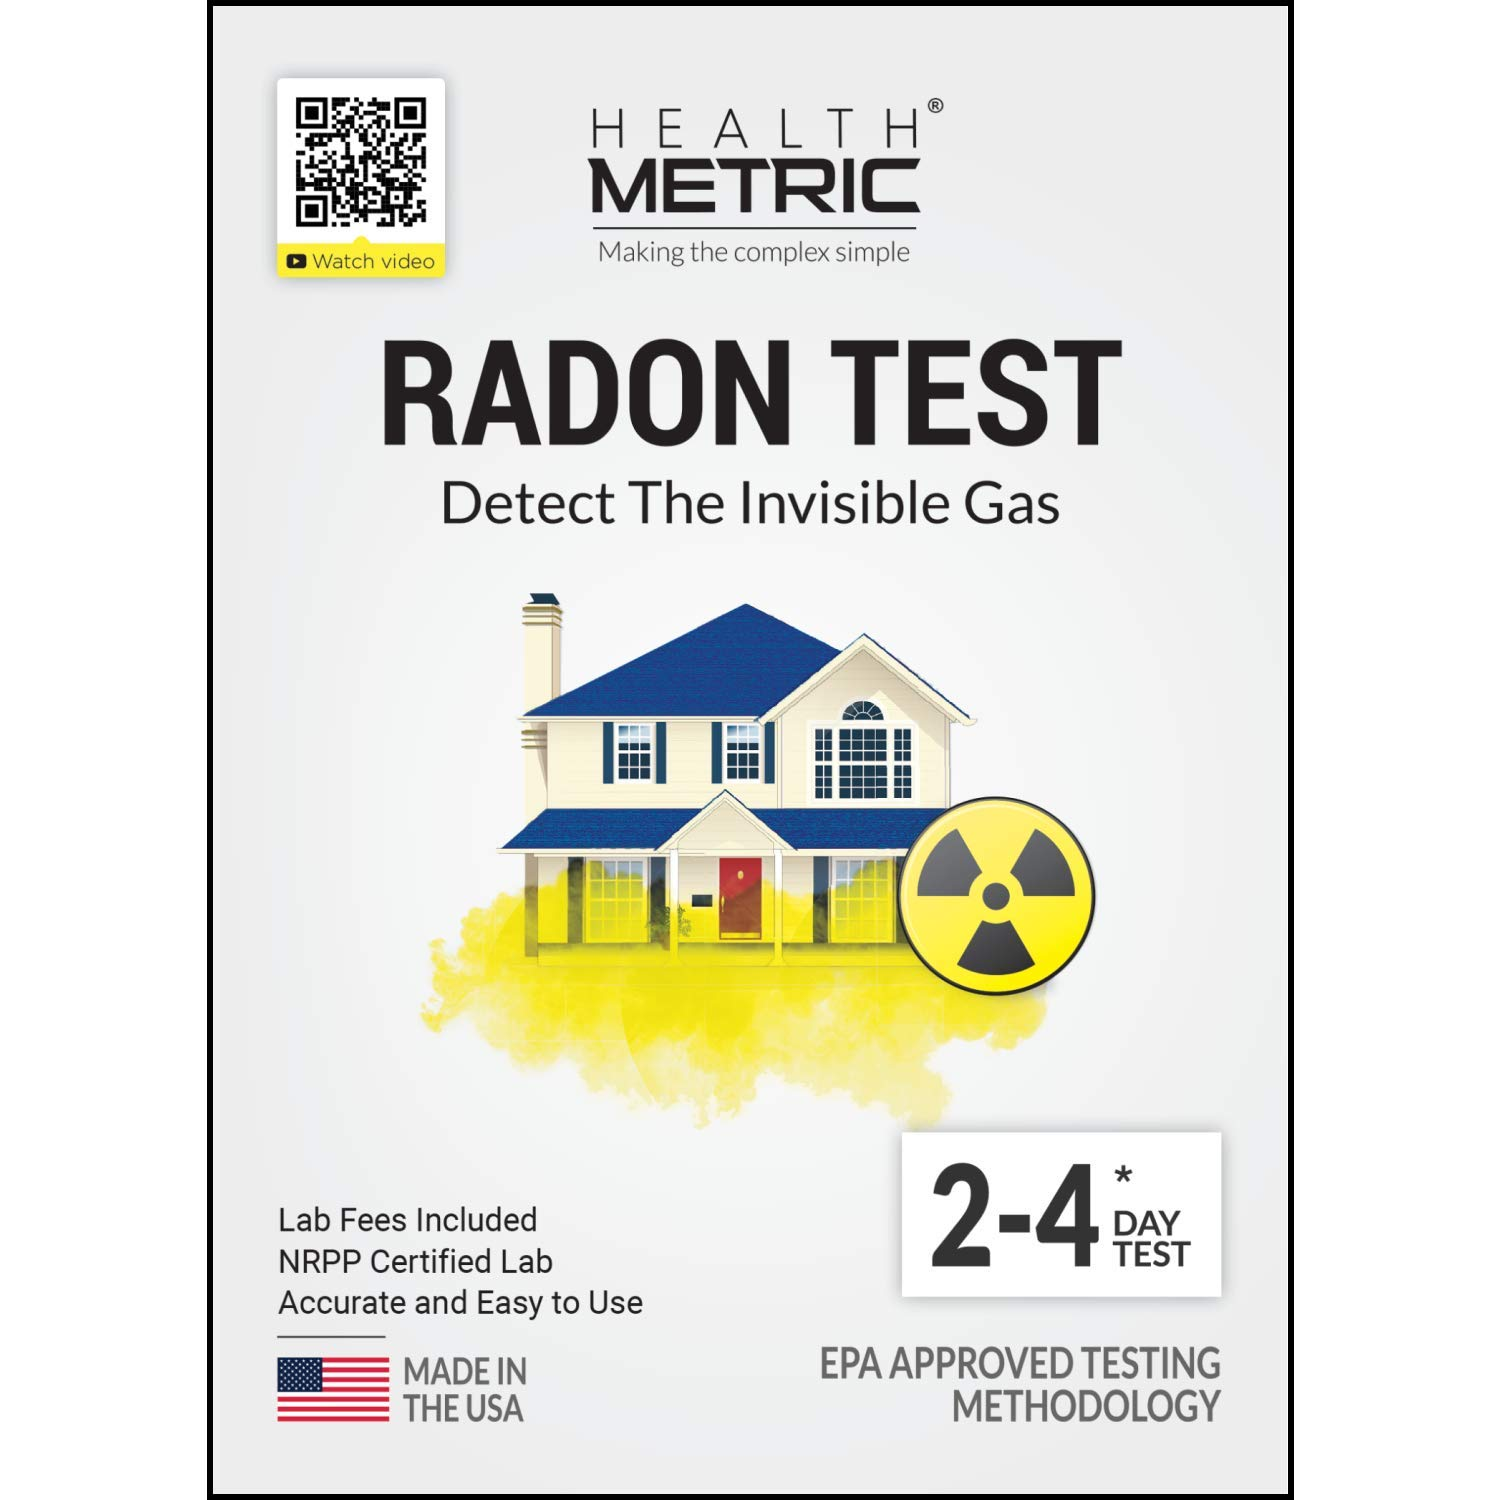 Radon Test Kit for Home - Easy to Use Charcoal Radon Gas Detector for Peace of Mind | 48-96h Short Term EPA Approved Radon Tester | Includes Lab Fees | Protect Yourself and Your Family